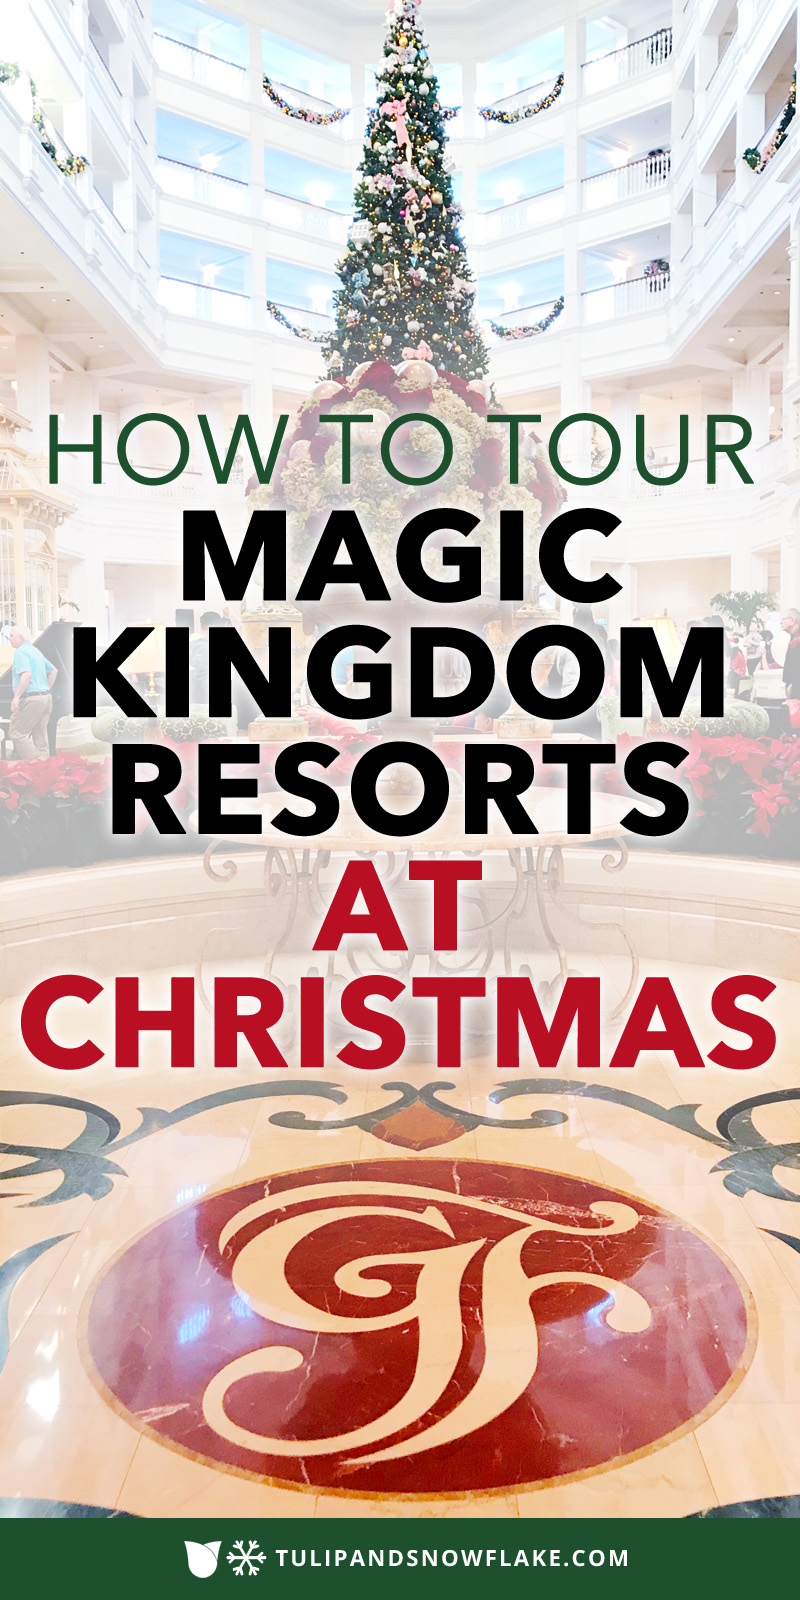 How to Tour Magic Kingdom Resorts at Christmas